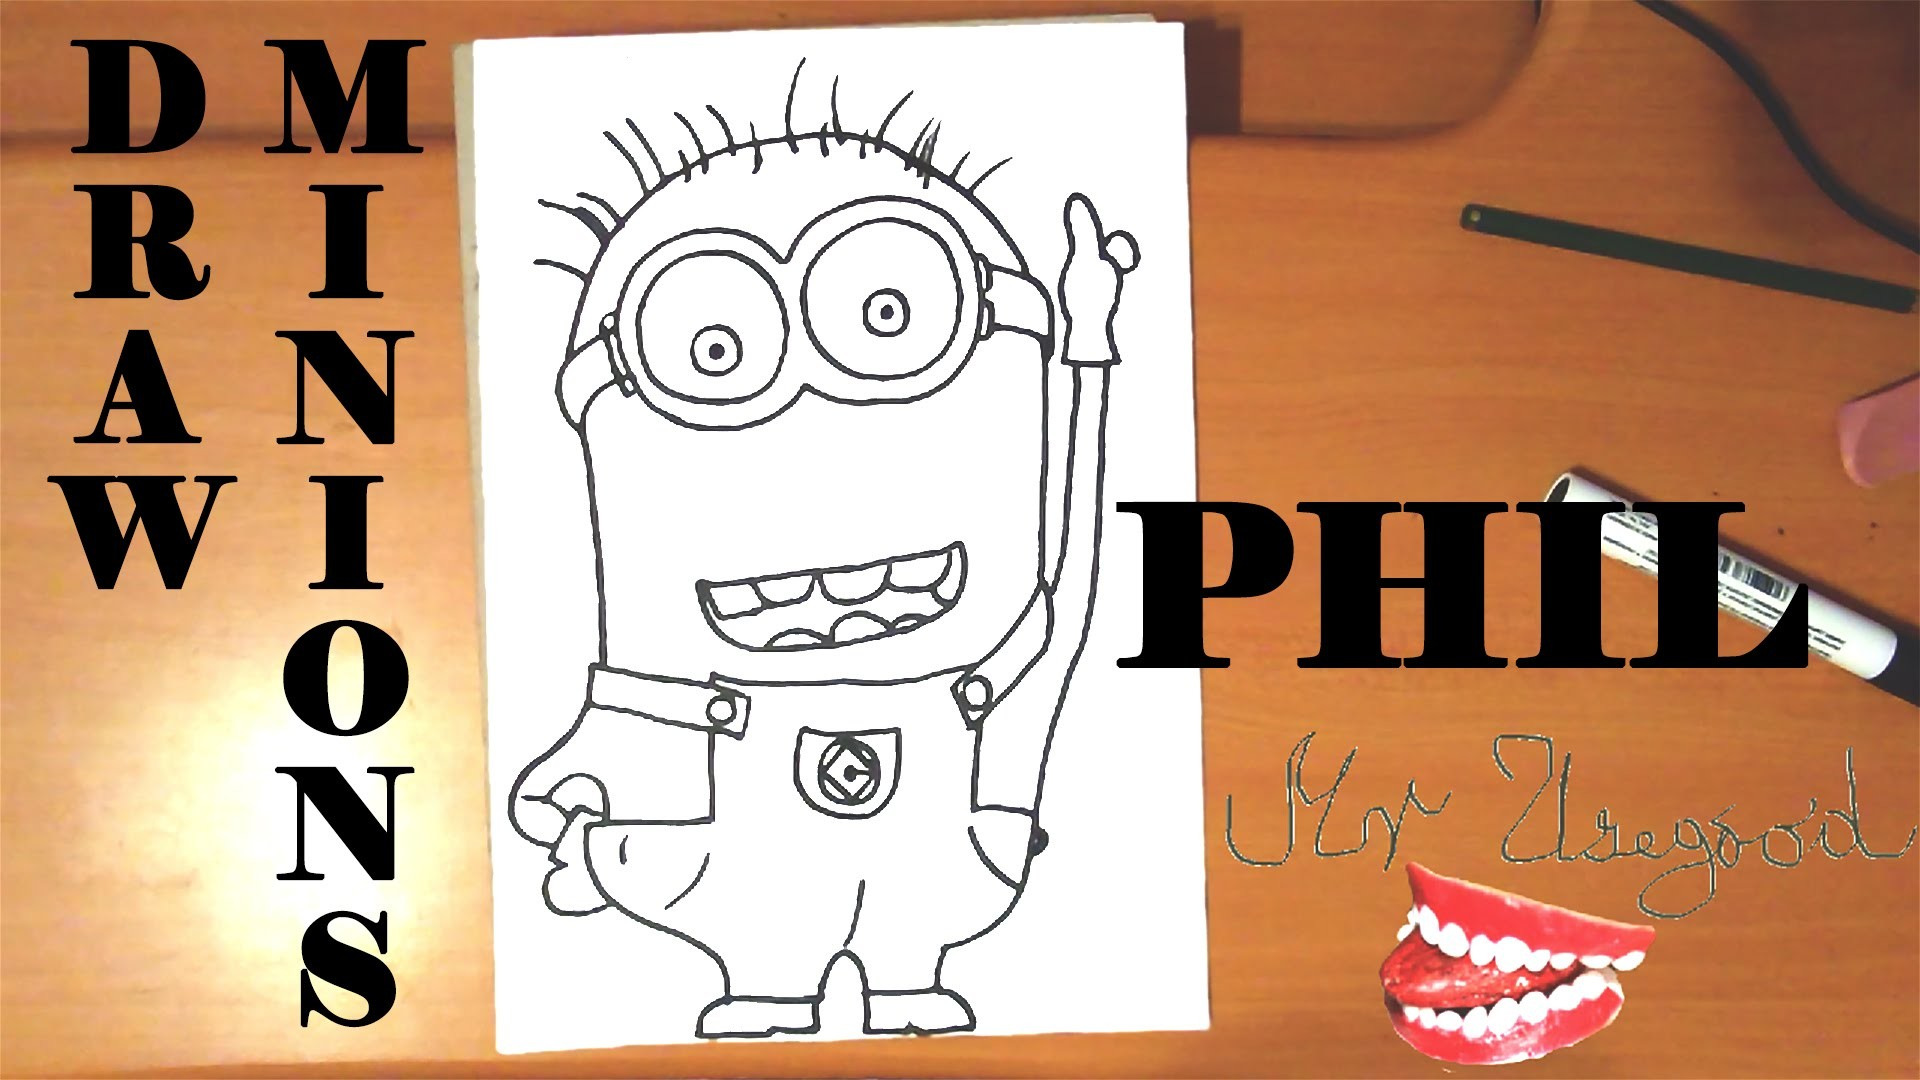 How to draw a MINION Phil Easy from DESPICABLE ME 2,draw easy stuff but cool on paper|SPEED ART